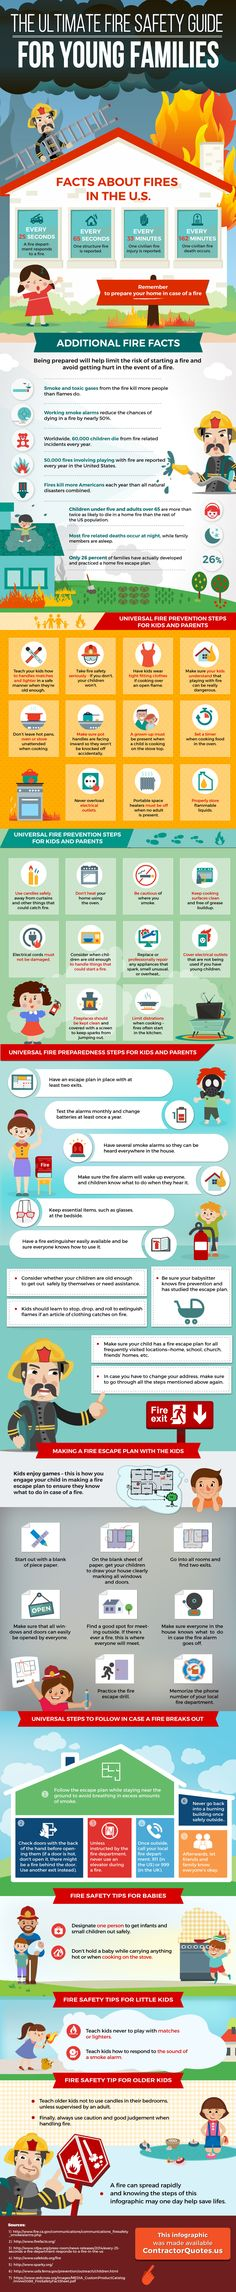 Fire Safety for Kids #infographic #Fire #Safety